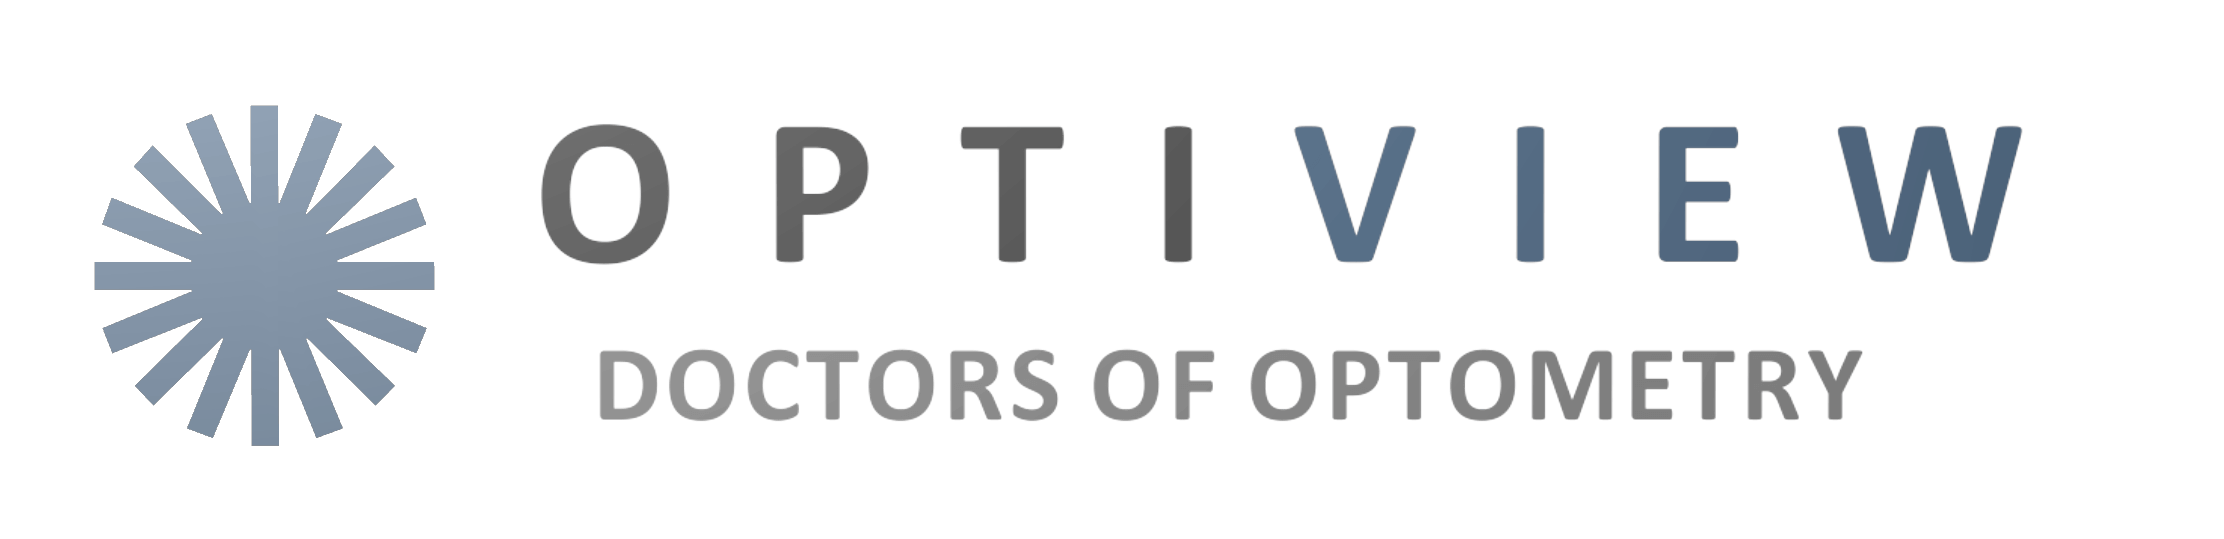 OPTIVIEW Eye Clinic – Doctors of Optometry